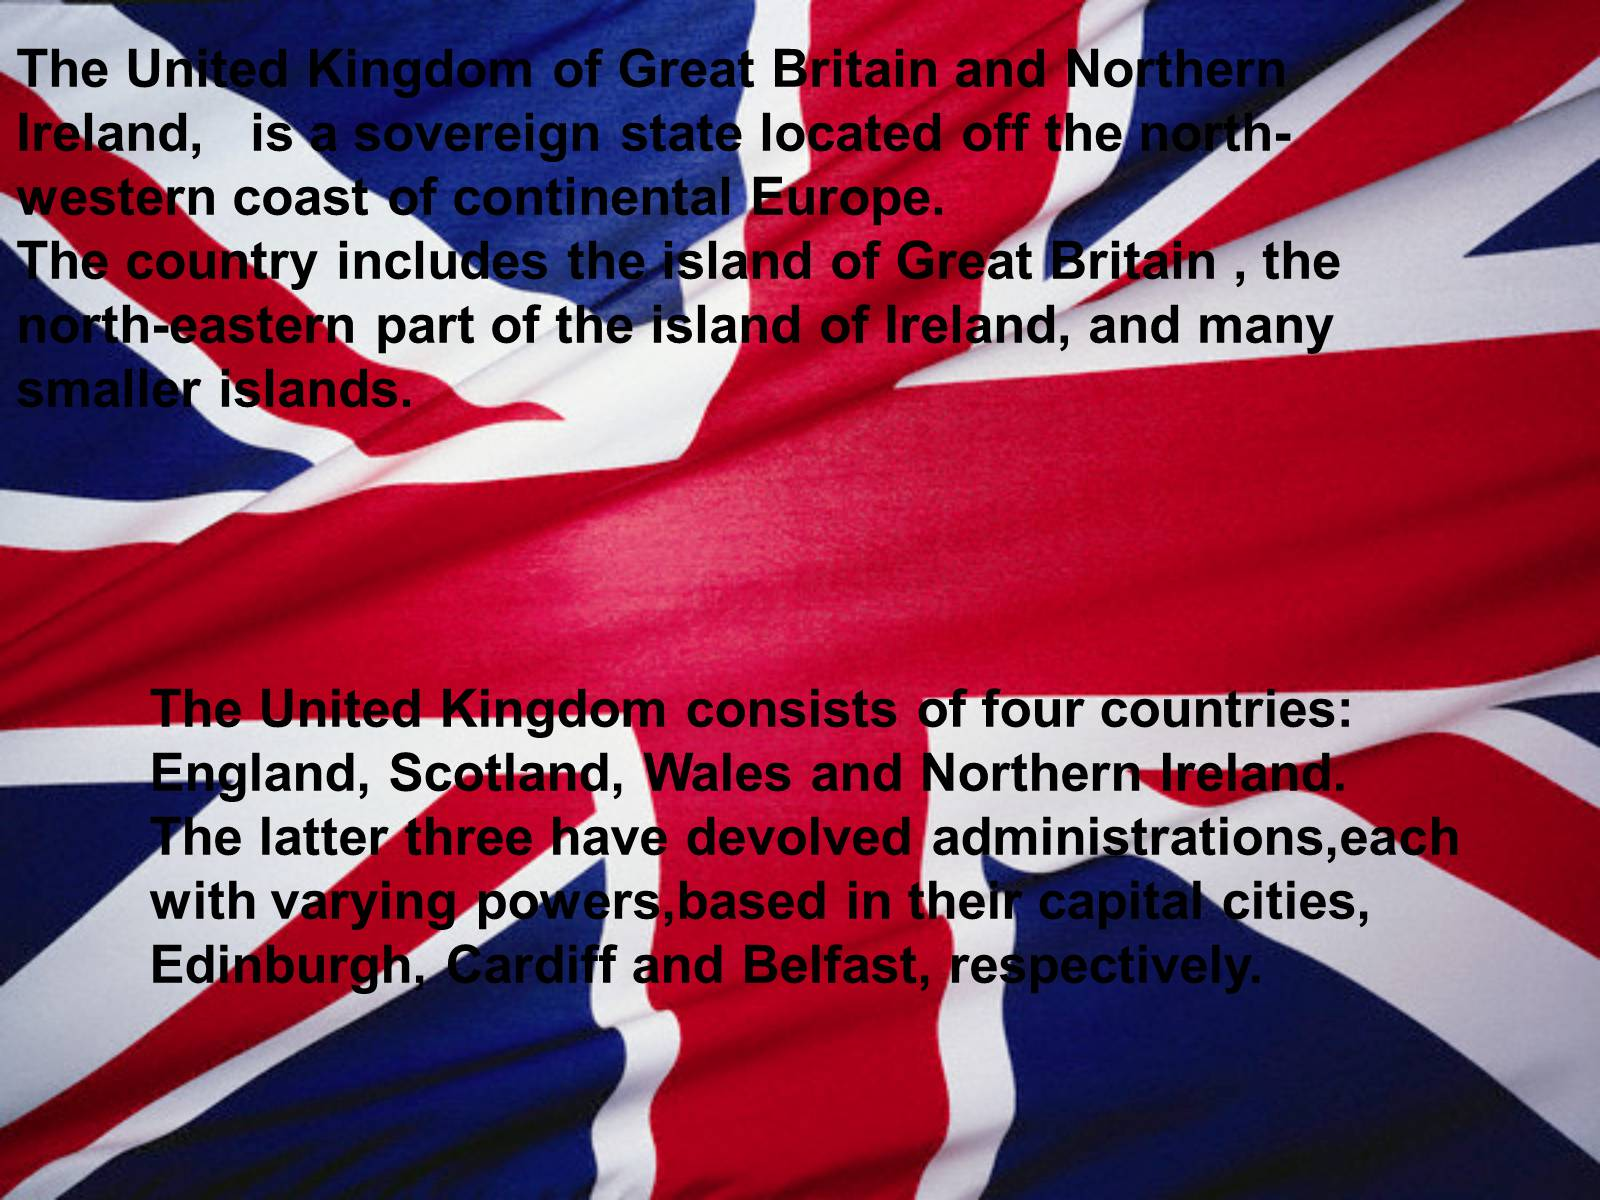 Презентація на тему «The United Kingdom of Great Britain and Northern Ireland» (варіант 1) - Слайд #2